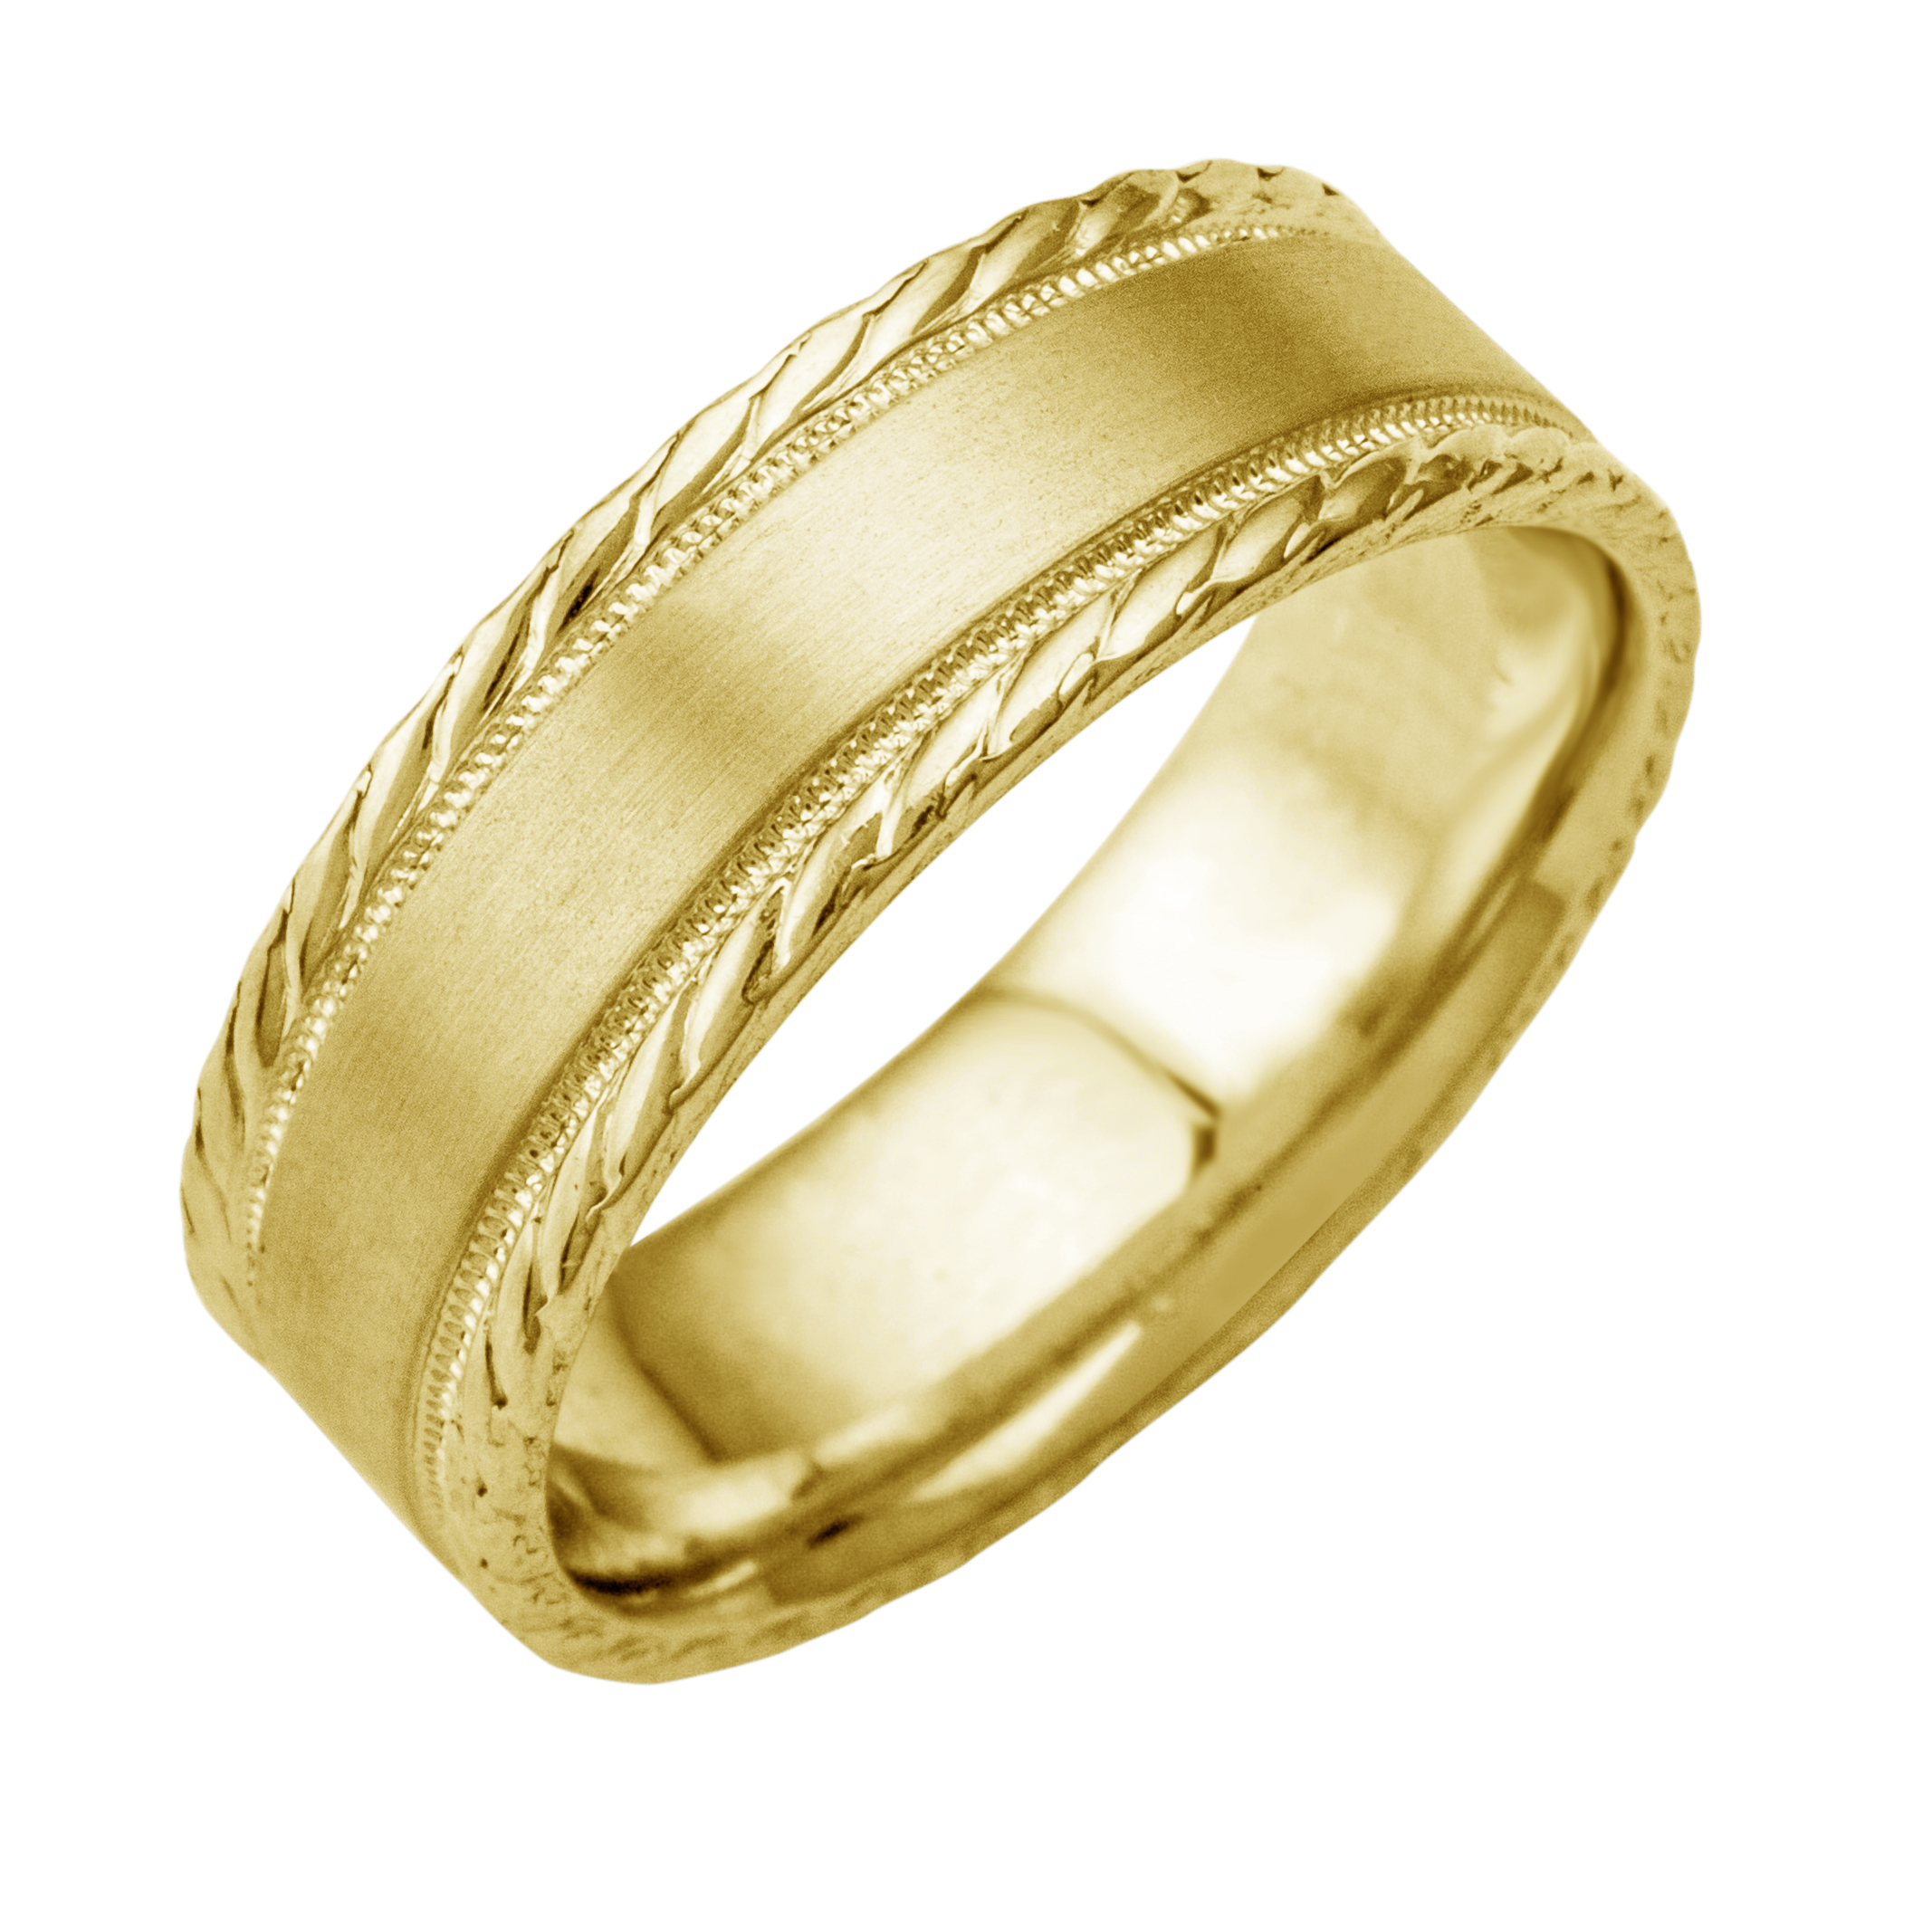 gold wedding ring yellow fit solid itm band menwomen comfort bands